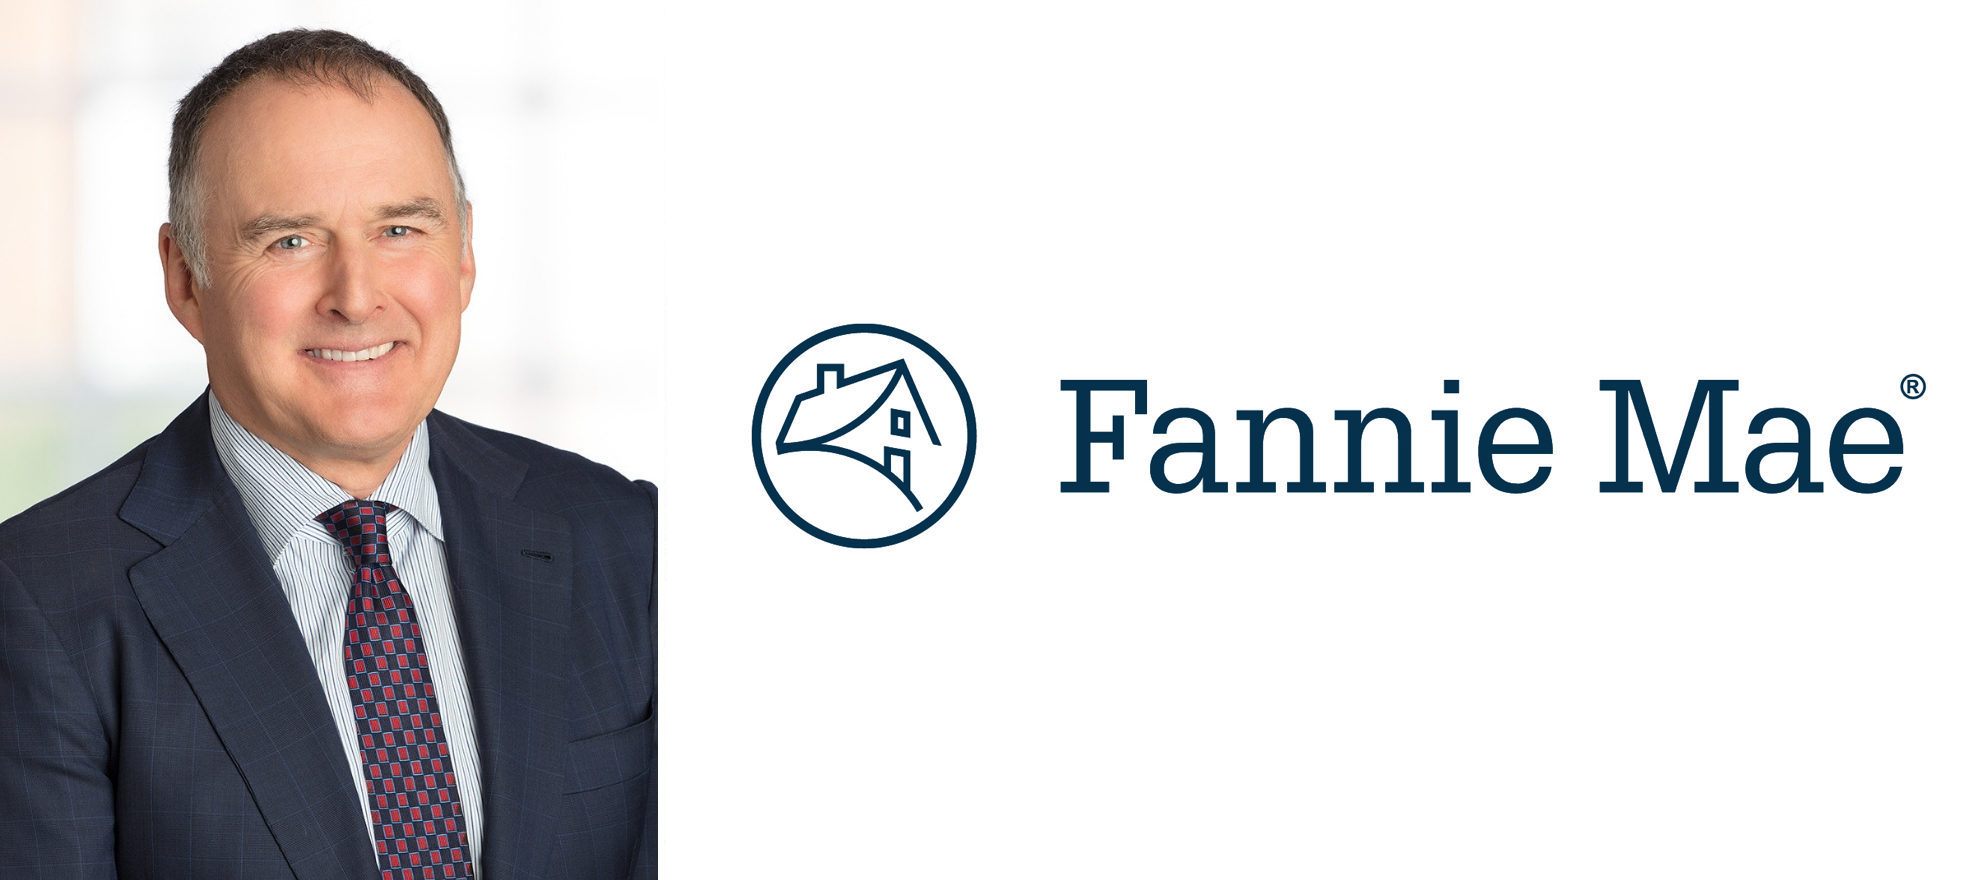 Fannie Mae appoints Hugh Frater as permanent CEO